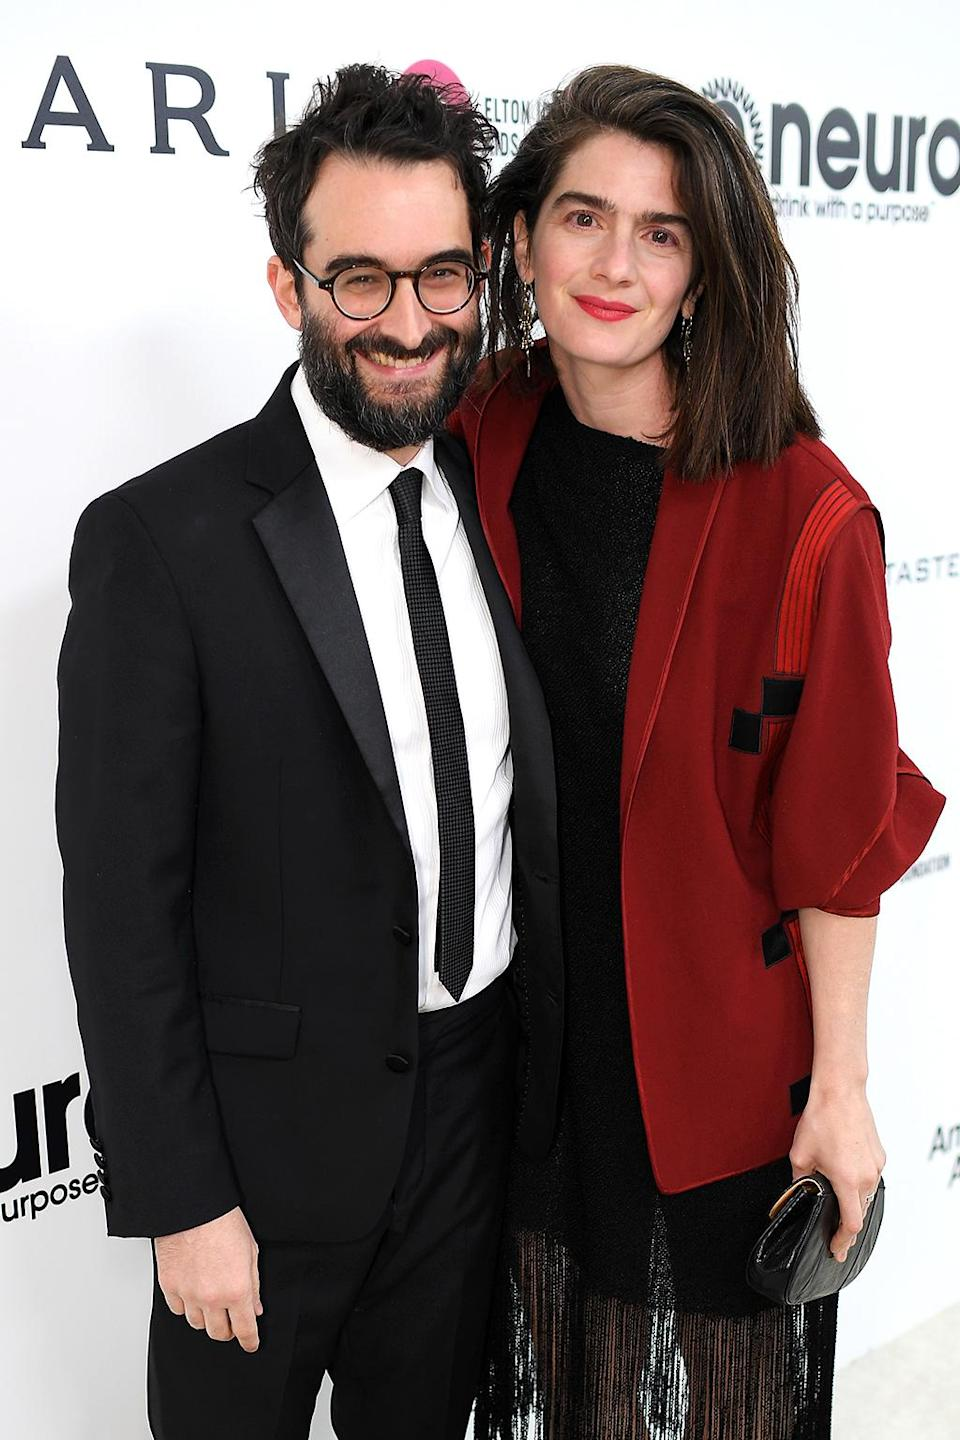 <p>Jay Duplass and Gaby Hoffman attend the 25th Annual Elton John AIDS Foundation's Academy Awards Viewing Party at The City of West Hollywood Park on February 26, 2017 in West Hollywood, California. (Photo by Dimitrios Kambouris/Getty Images for EJAF) </p>